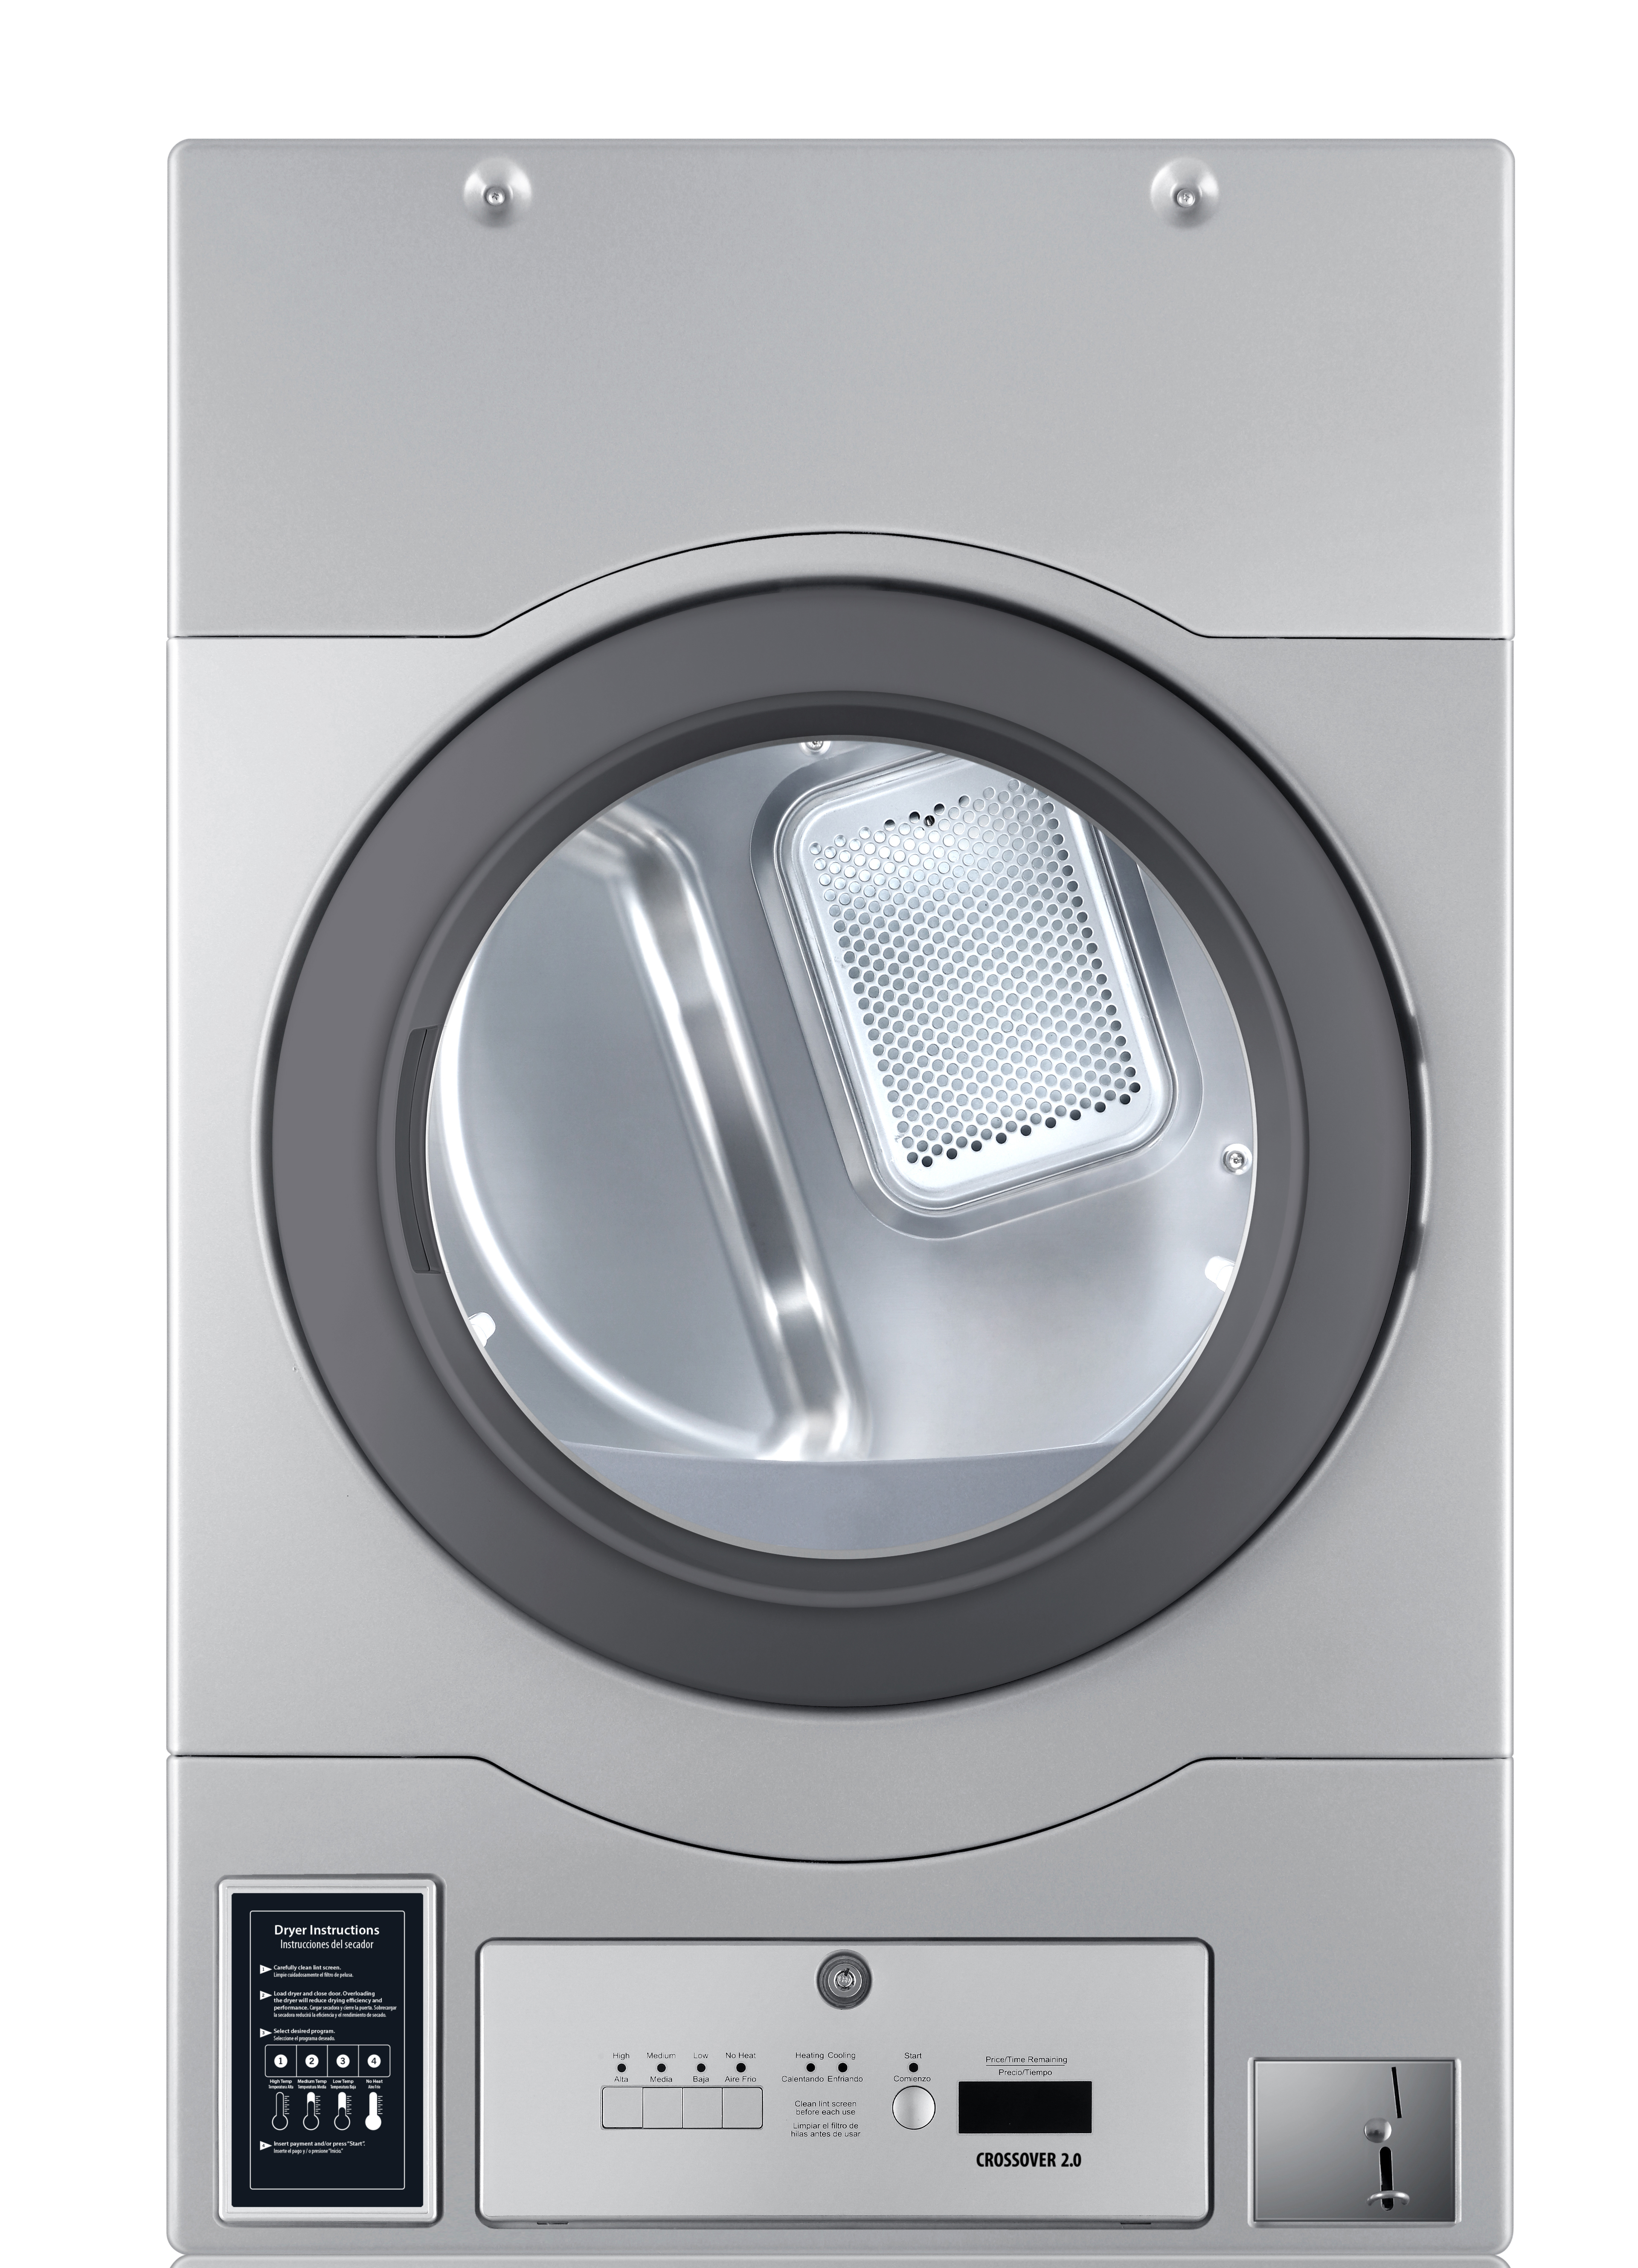 "Crossover Laundry Crossover True Commercial Laundry - 7.0 CF Bottom Control Gas Dryer, Coin Option Included/Card Ready, Silver, 27"" (Stacked application)"